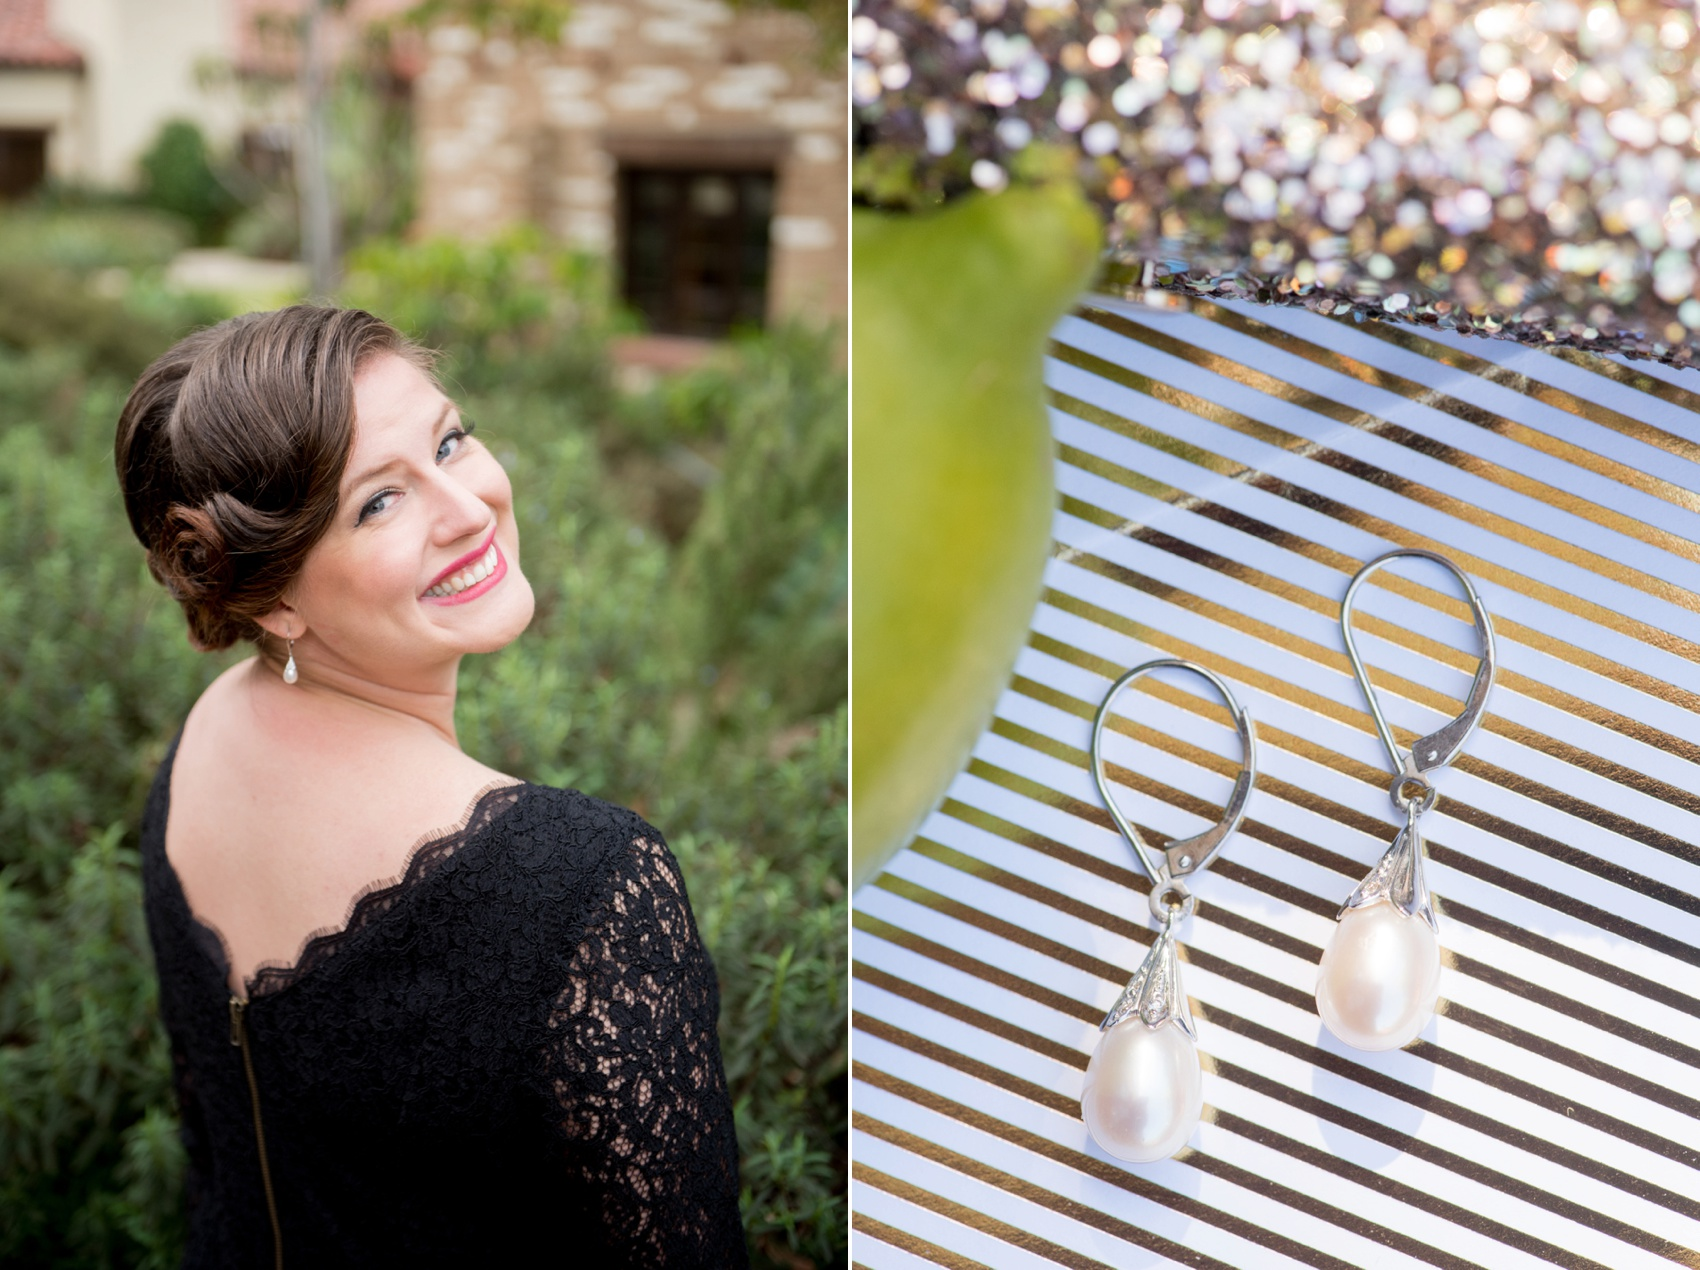 Estancia La Jolla wedding photography by Mikkel Paige Photography. Tropical wedding, California coast. Black lace bridesmaids dresses with pearl drop earrings.